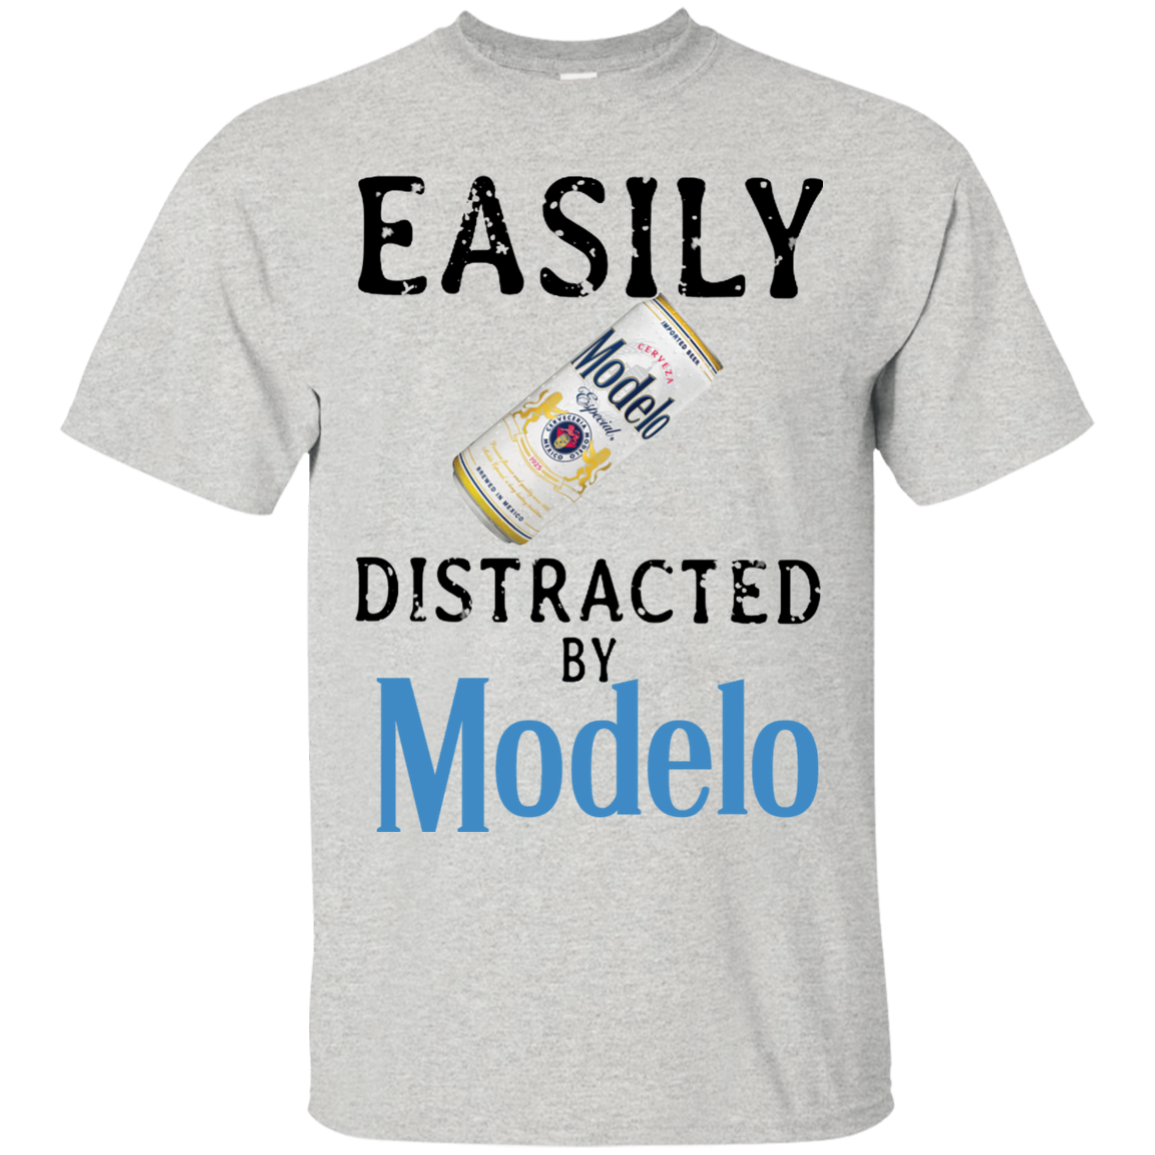 389cf747e Easily distracted by Modelo Especial T shirt hoodie sweater Men ...